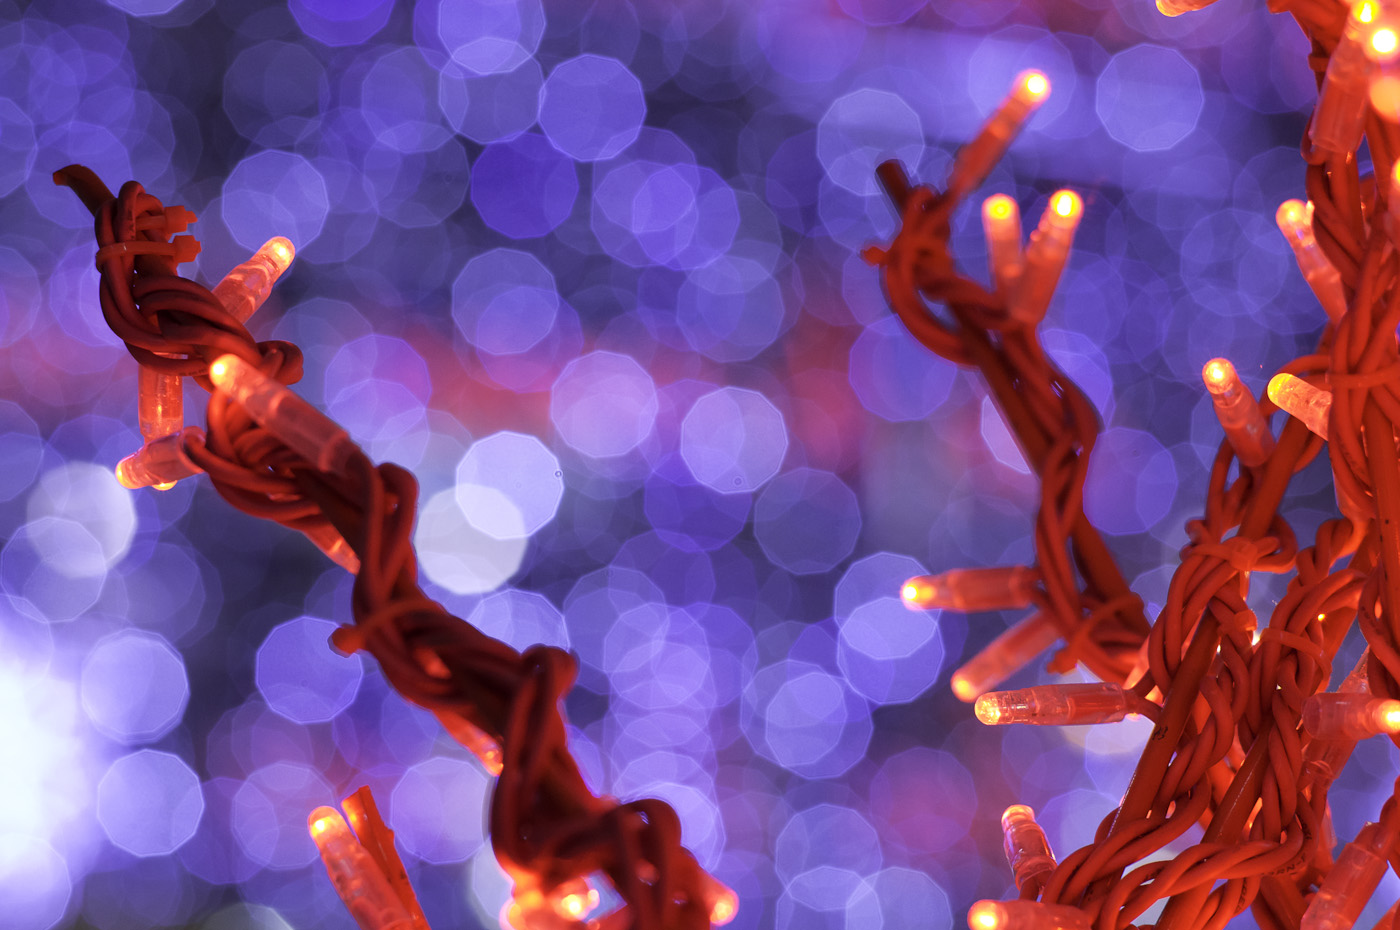 A close up on Christmas light showing nice bokeh, Sony NEX-5N & Leica Summarit-M 75mm/2.5